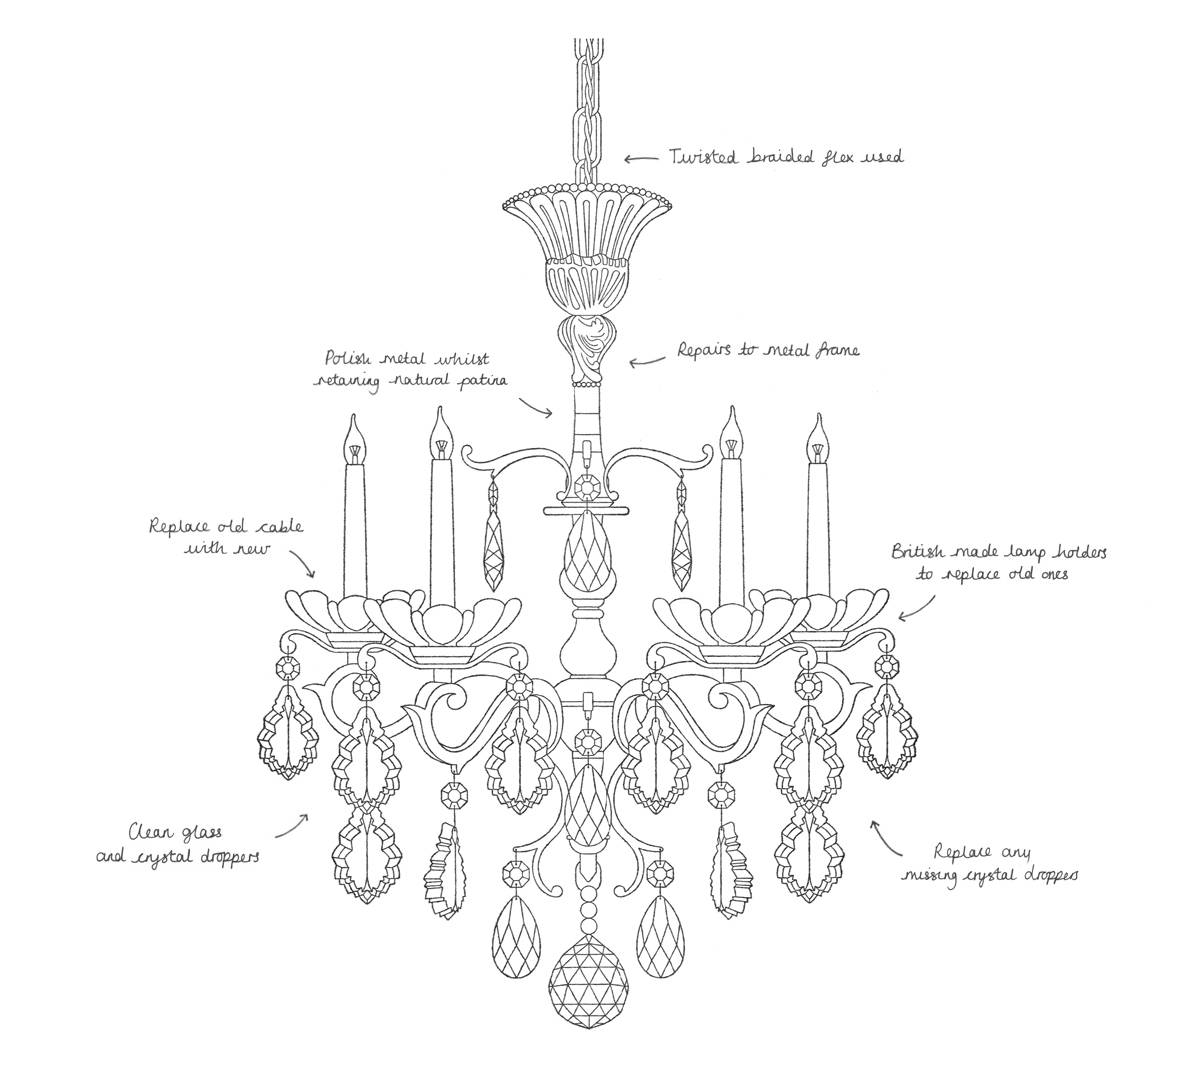 Chandelier_1200pxwide31 copy